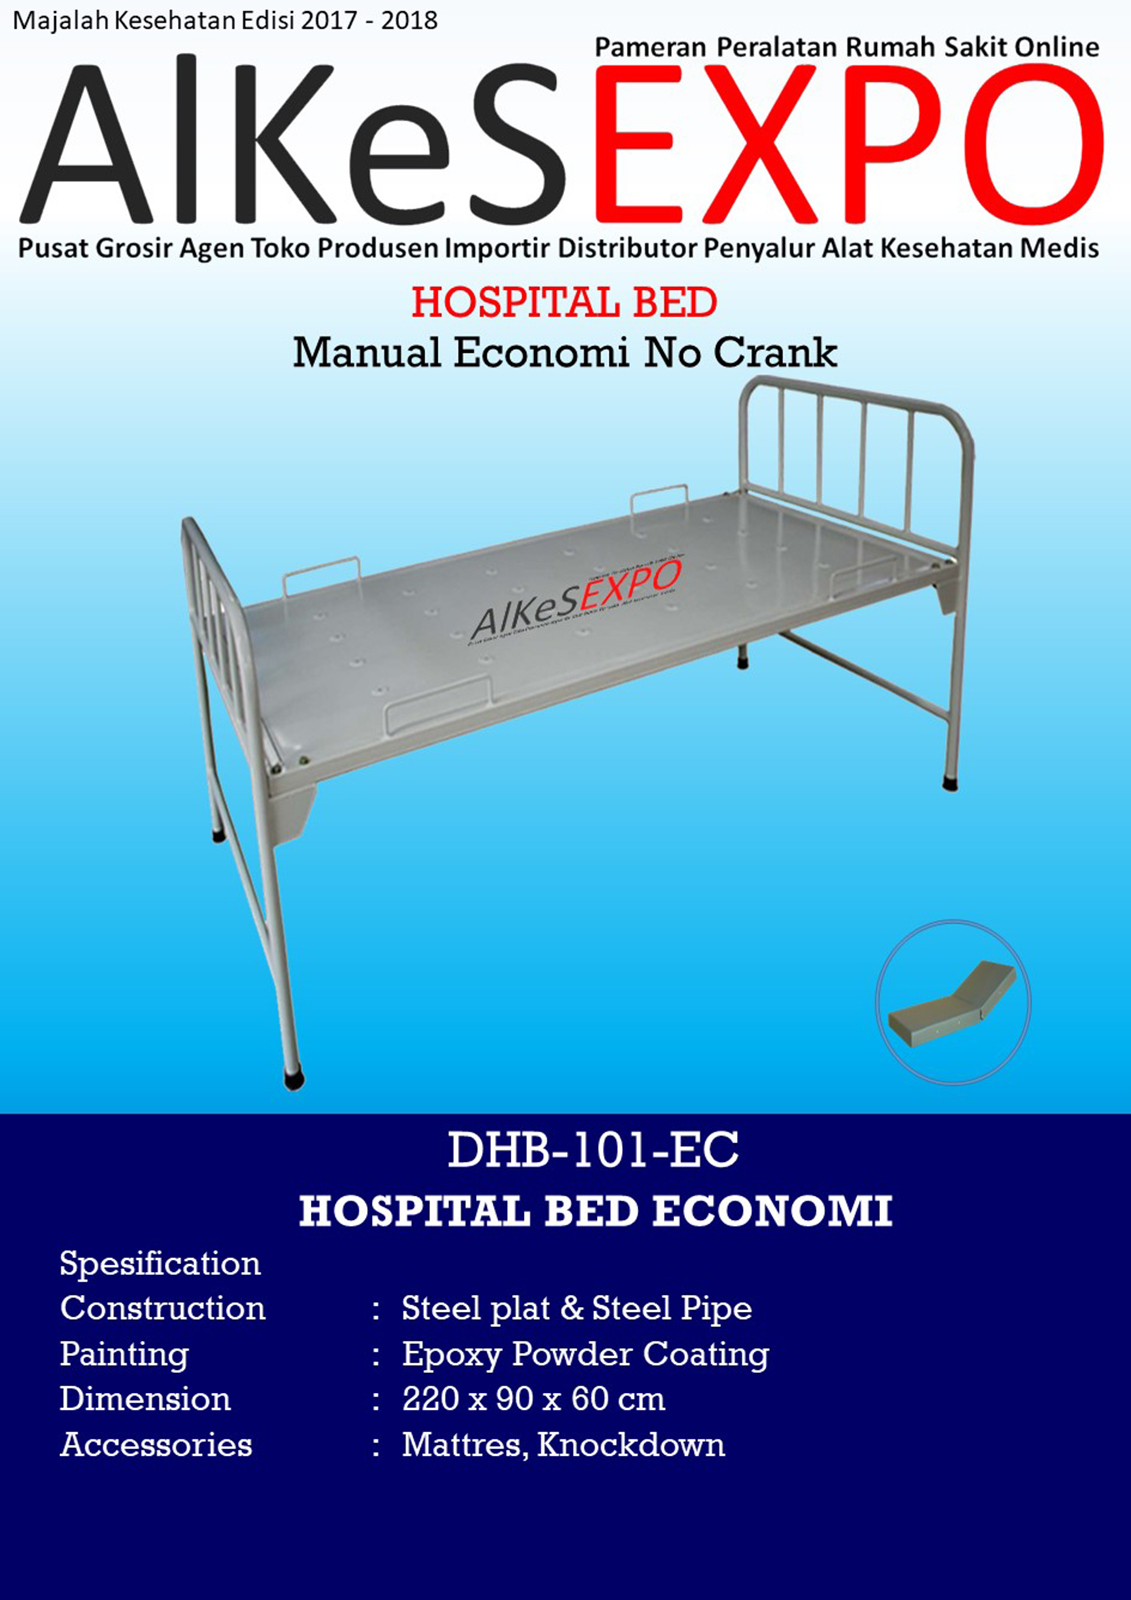 Hospital Bed Economi No Crank DHB-101-EC